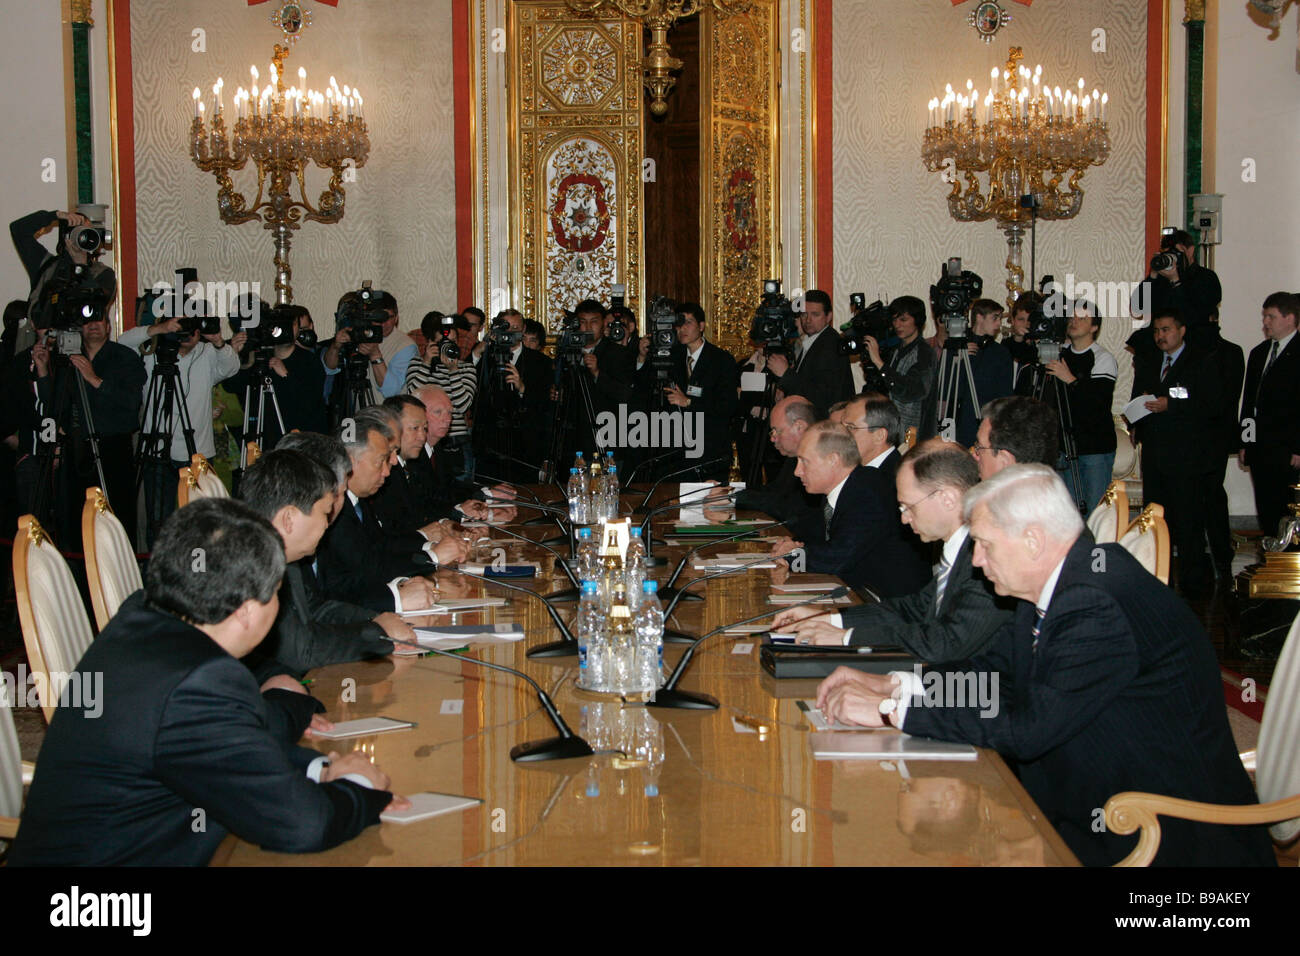 Russo Kyrgyz negotiations in the Kremlin Stock Photo